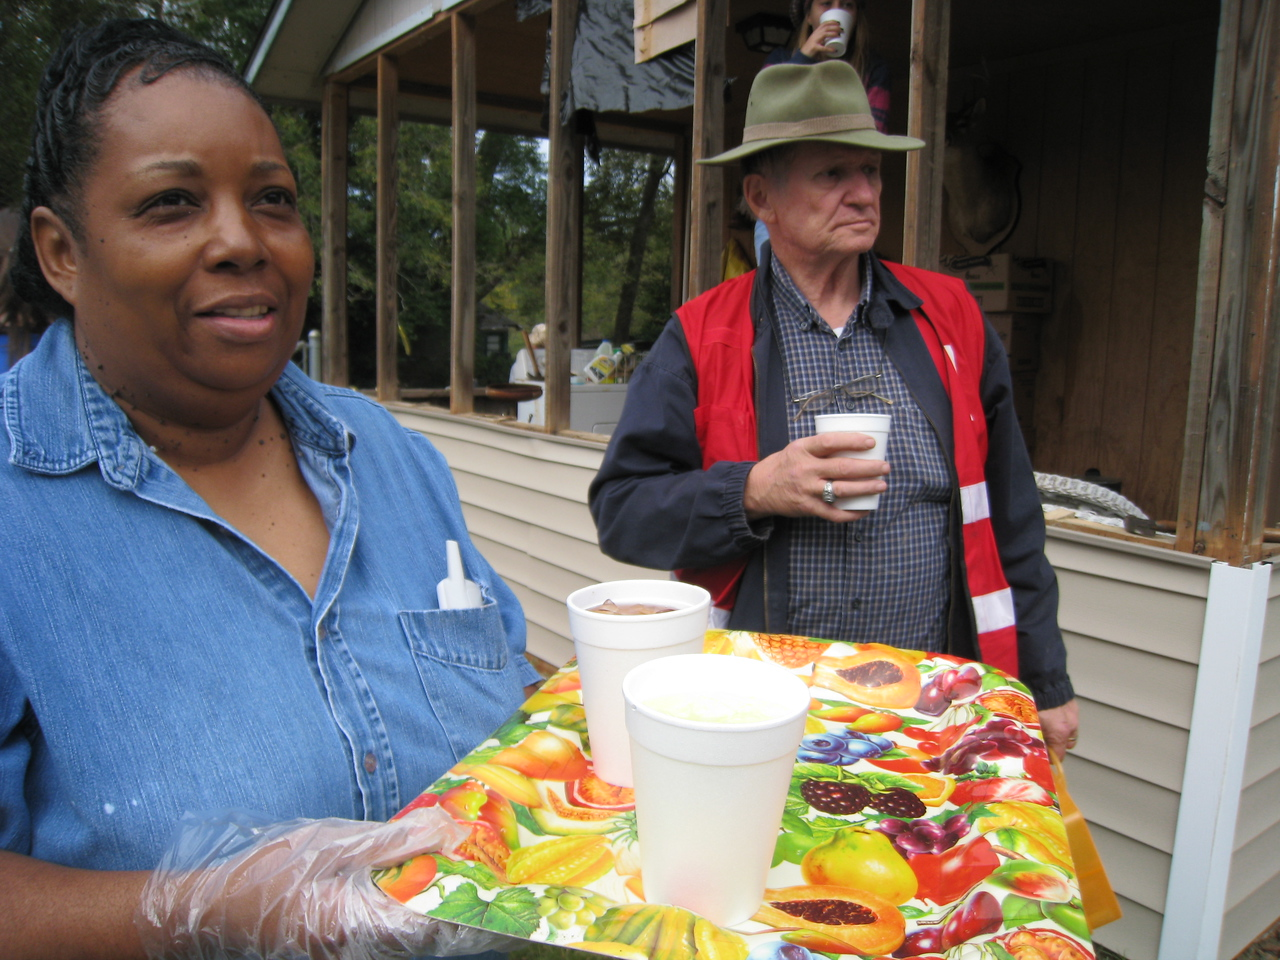 09 10-24 Anita Lyles brings cold drinks to the volunteers working on her home. ky